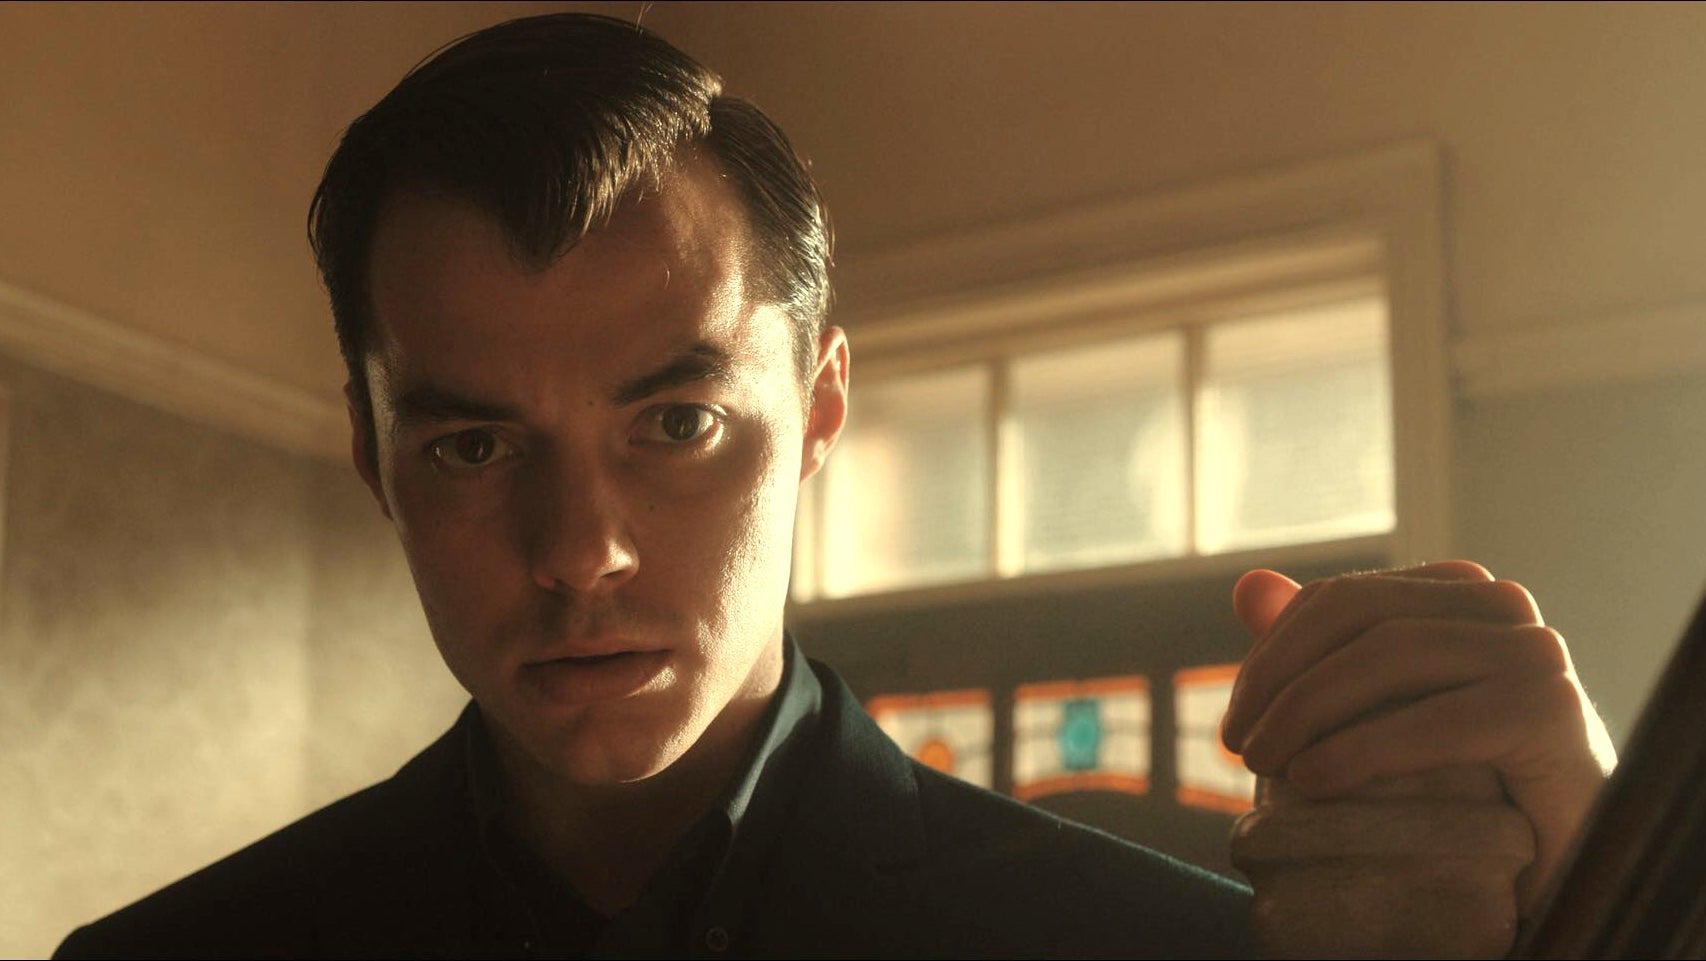 This Pennyworth Teaser Reminds Us That Batman's Butler Is British